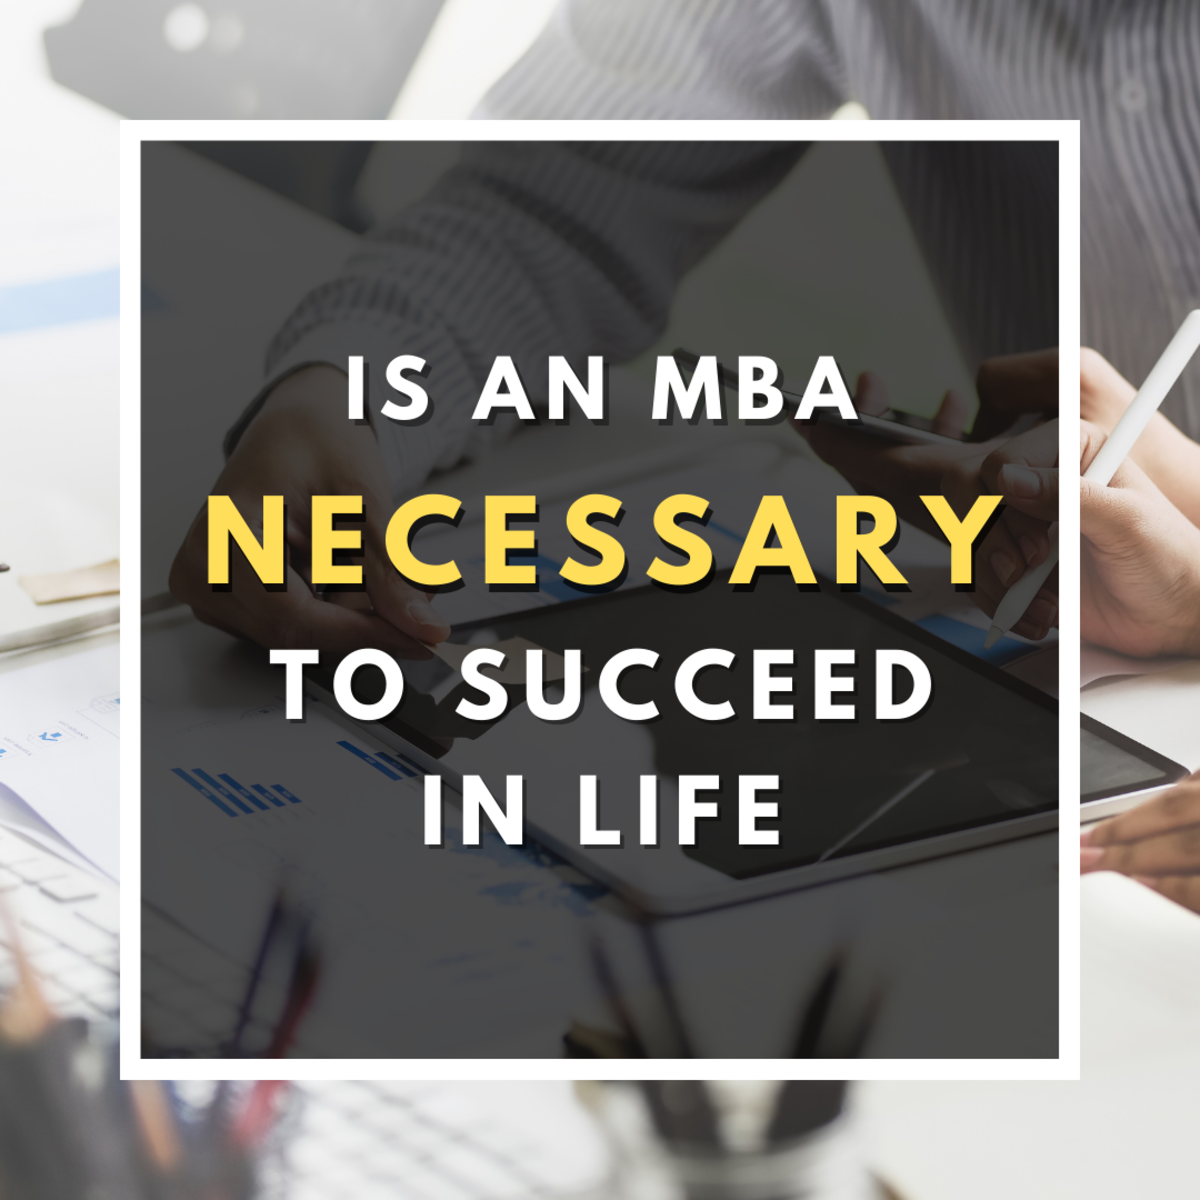 Is an MBA Necessary to Succeed in Life?